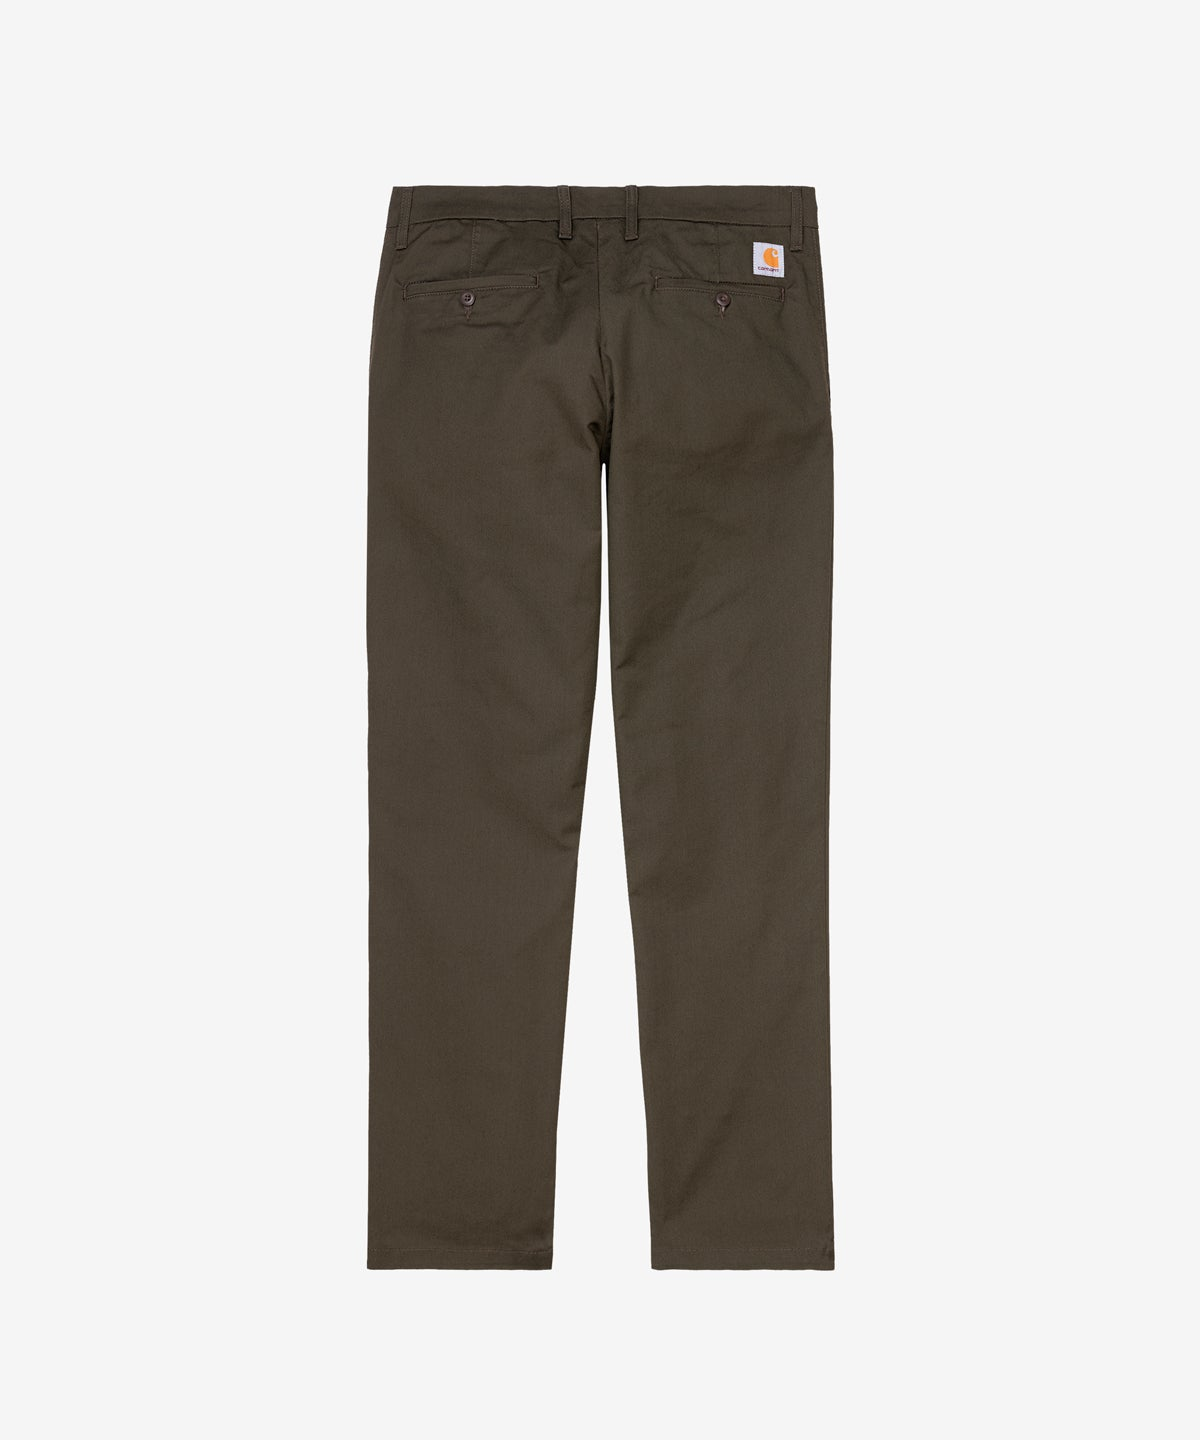 Image of CARHARTT WIP_JOHNSON PANT :::CYPRESS:::